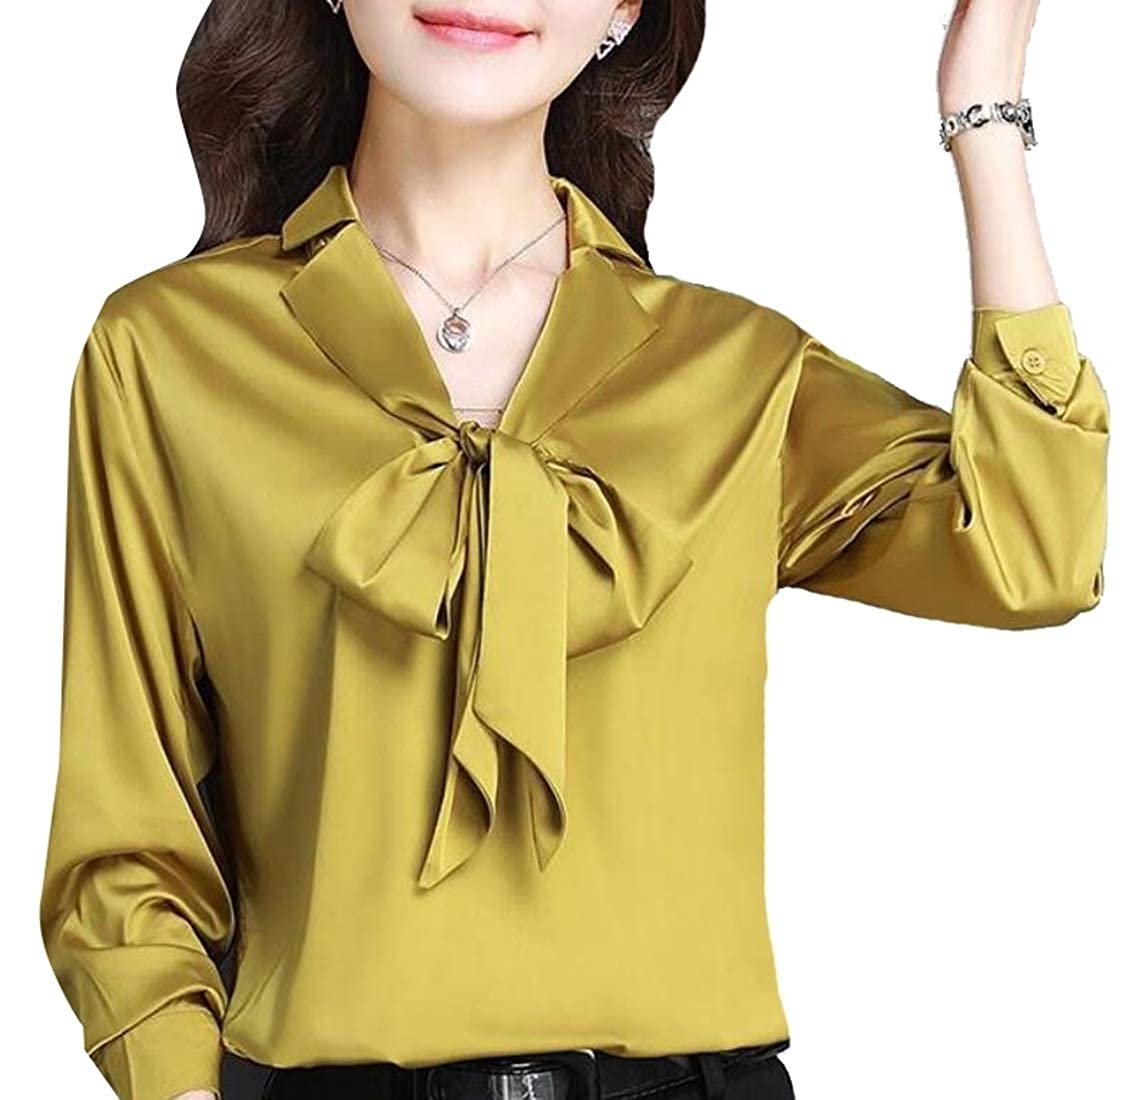 3e42df55 GAGA Women Long Sleeve Bow Tie Neck Plus Size Button Down Shirt Top at  Amazon Women's Clothing store: